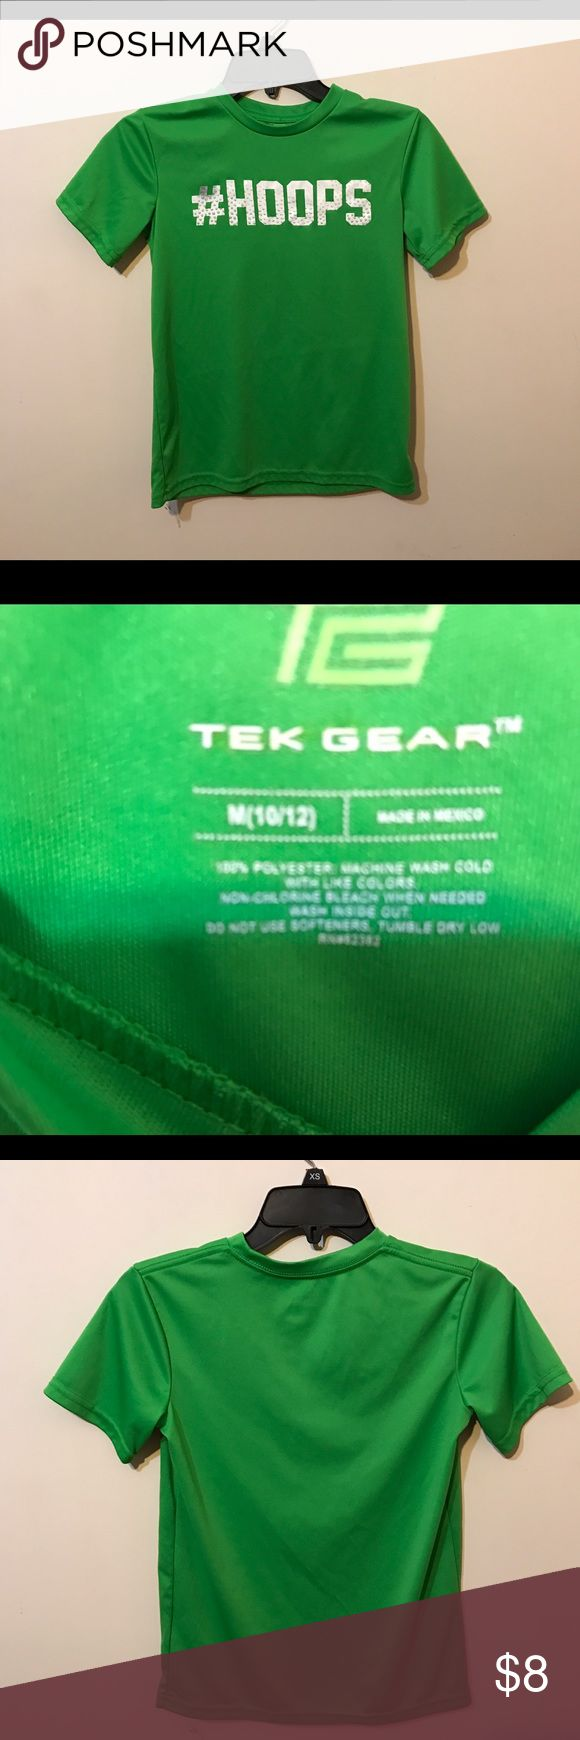 Tek Gear, Boy's Youth....Size M 10/12 Nice lime green shirt in excellent condition. 100% polyester. Tek Gear Shirts & Tops Tees - Short Sleeve